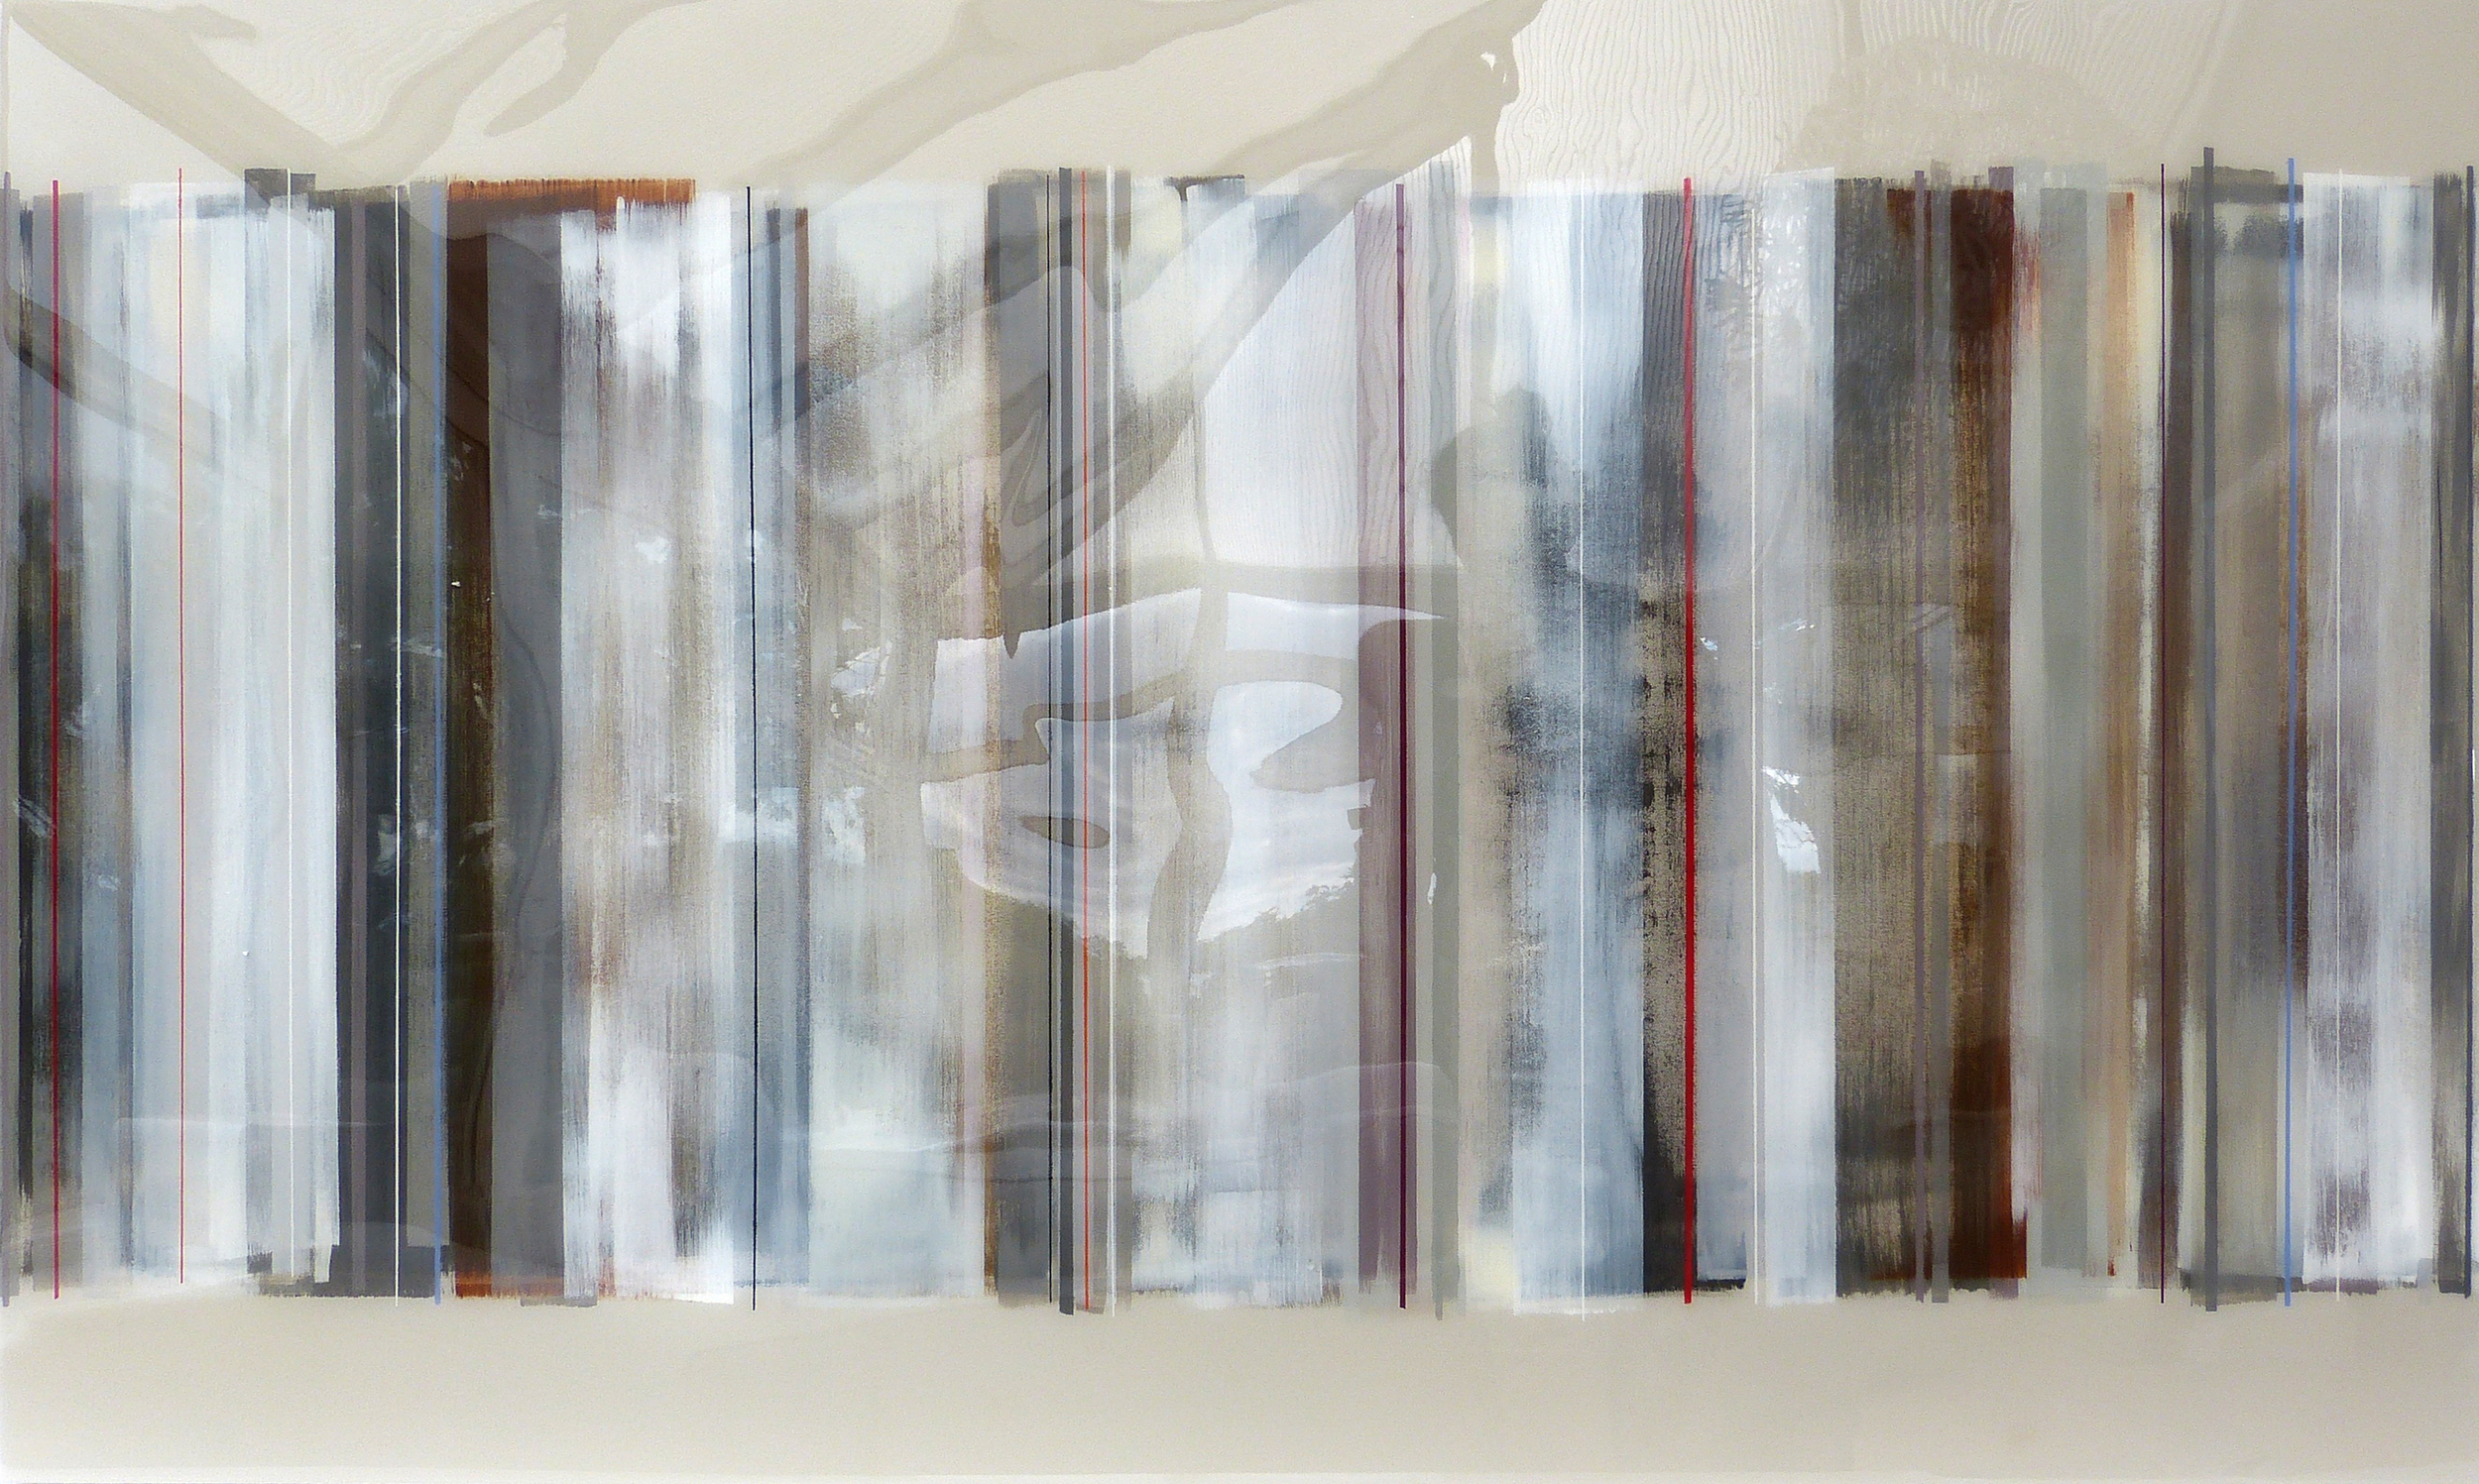 JAEGO 152x91cm | mixed media on canvas with high gloss epoxy resin |  £1800.00 |  SOLD